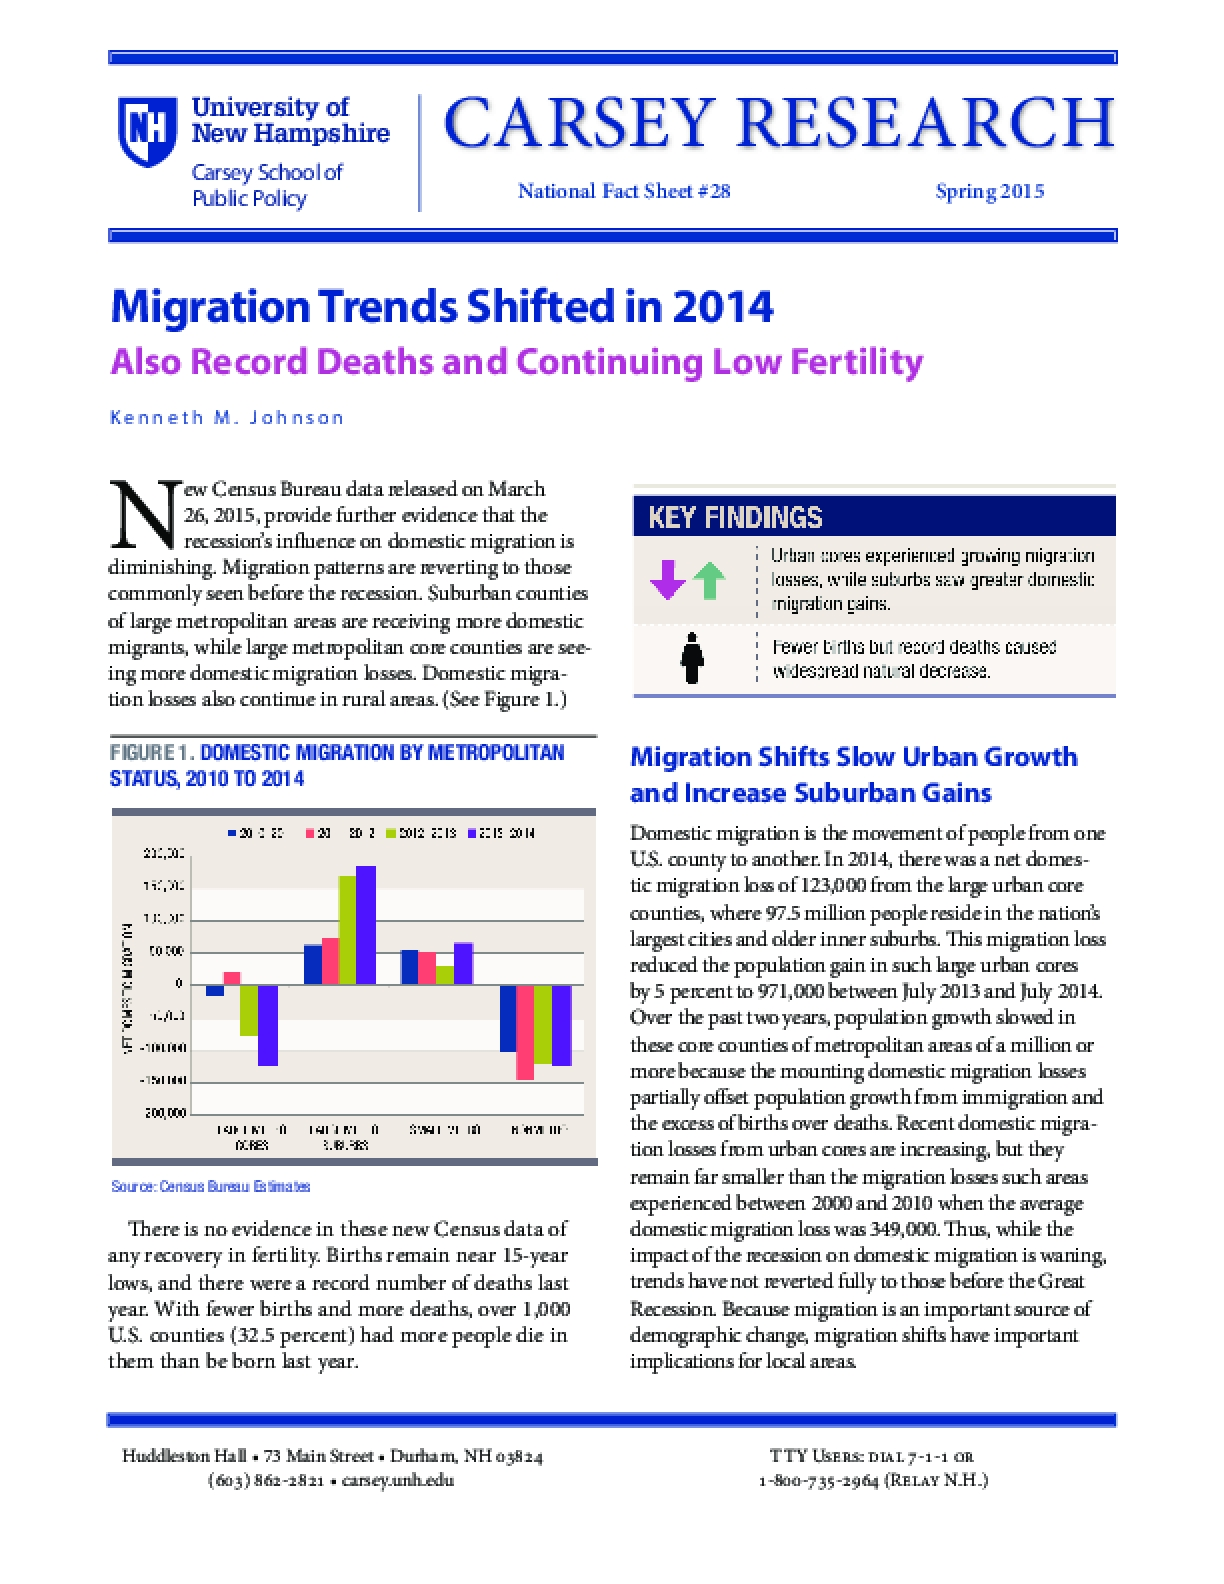 Migration Trends Shifted in 2014